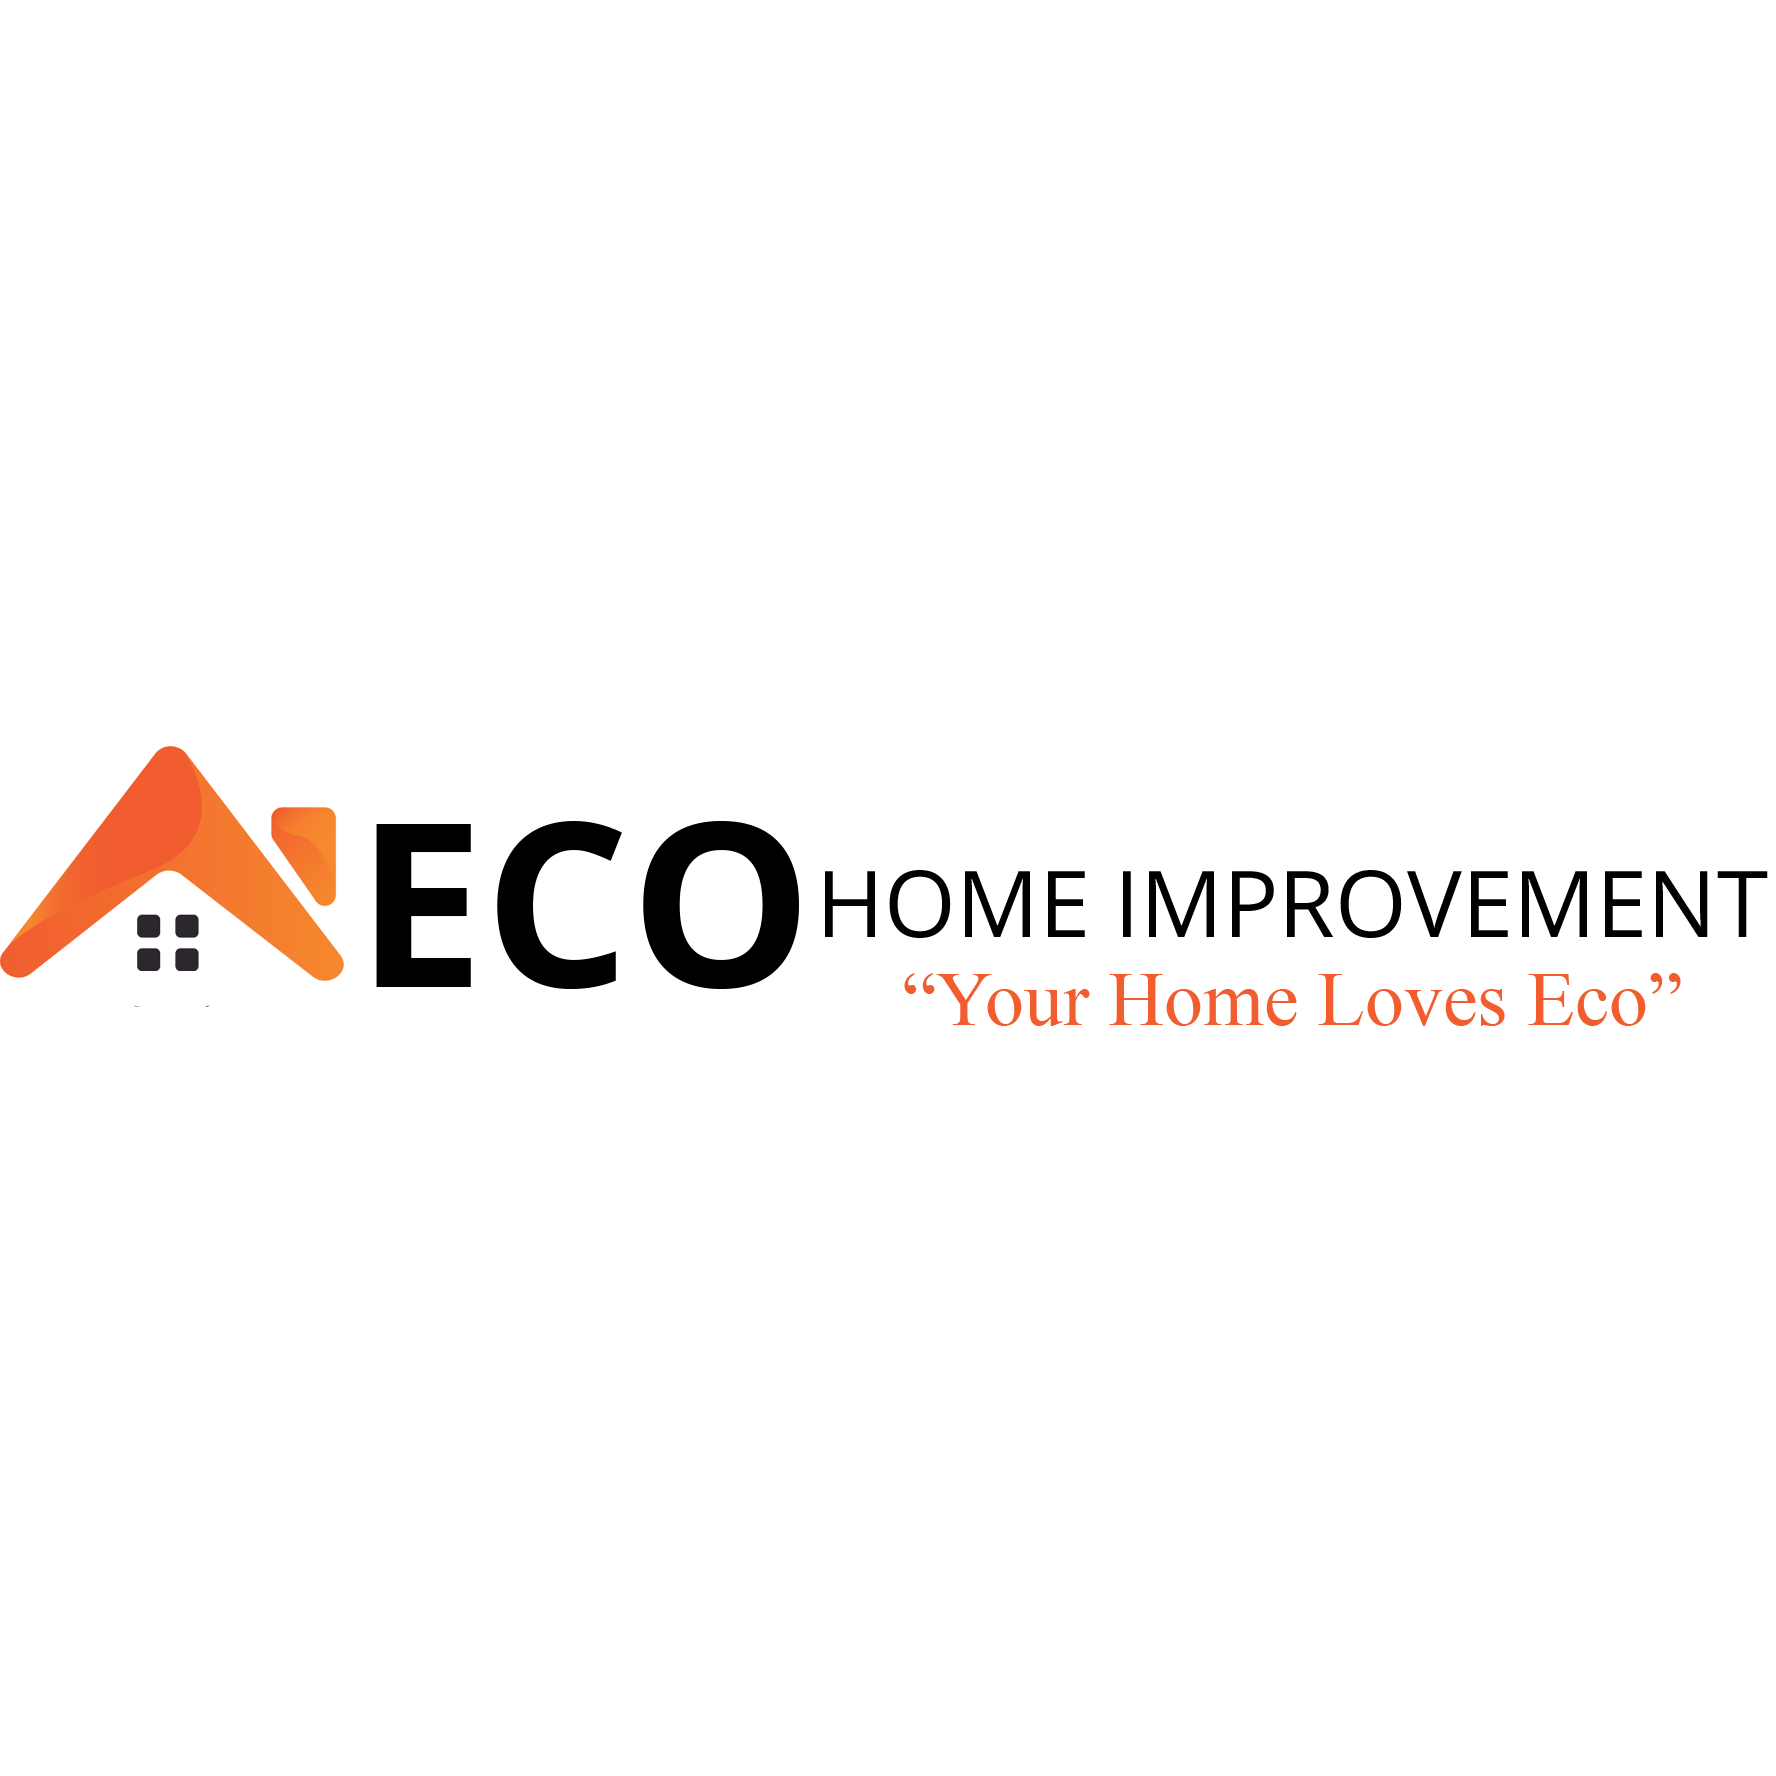 Eco Home Improvement & Remodeling - Construction Company